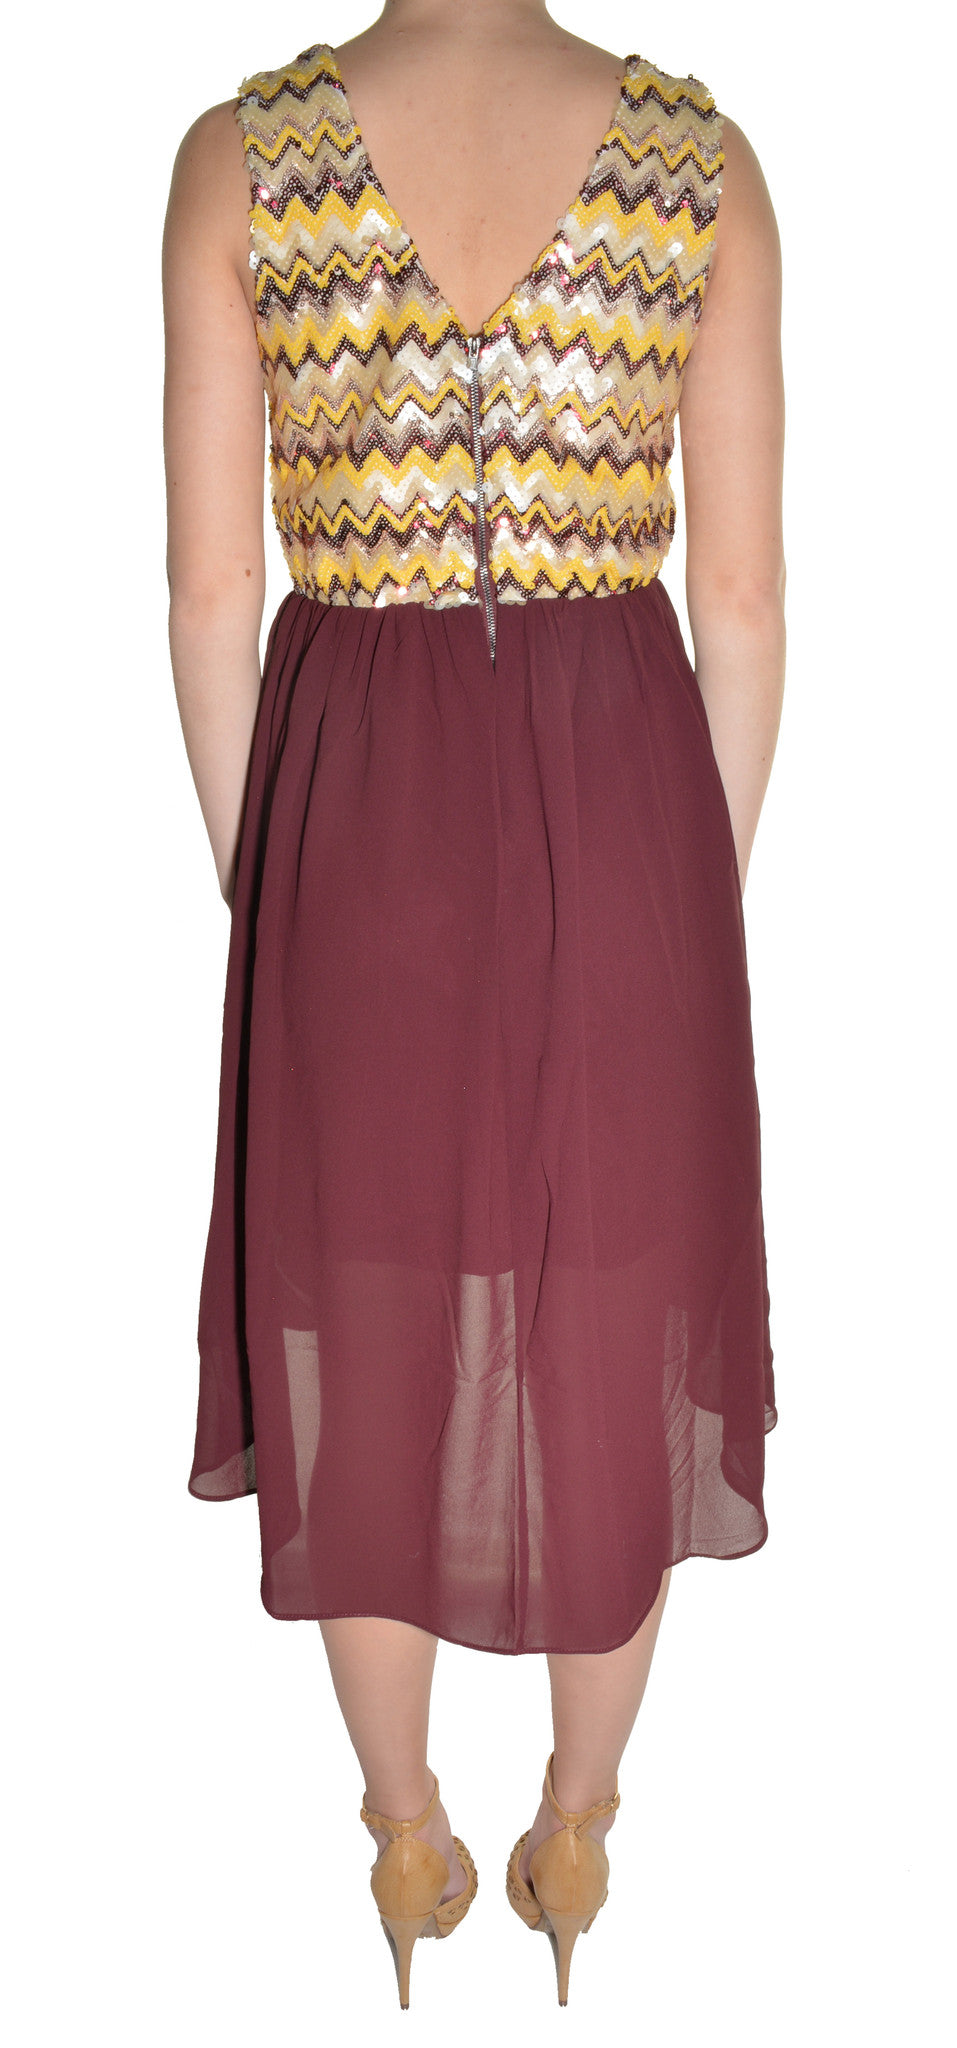 Sequin High Low Chiffon Cocktail Dress (Burgundy Red Gold)